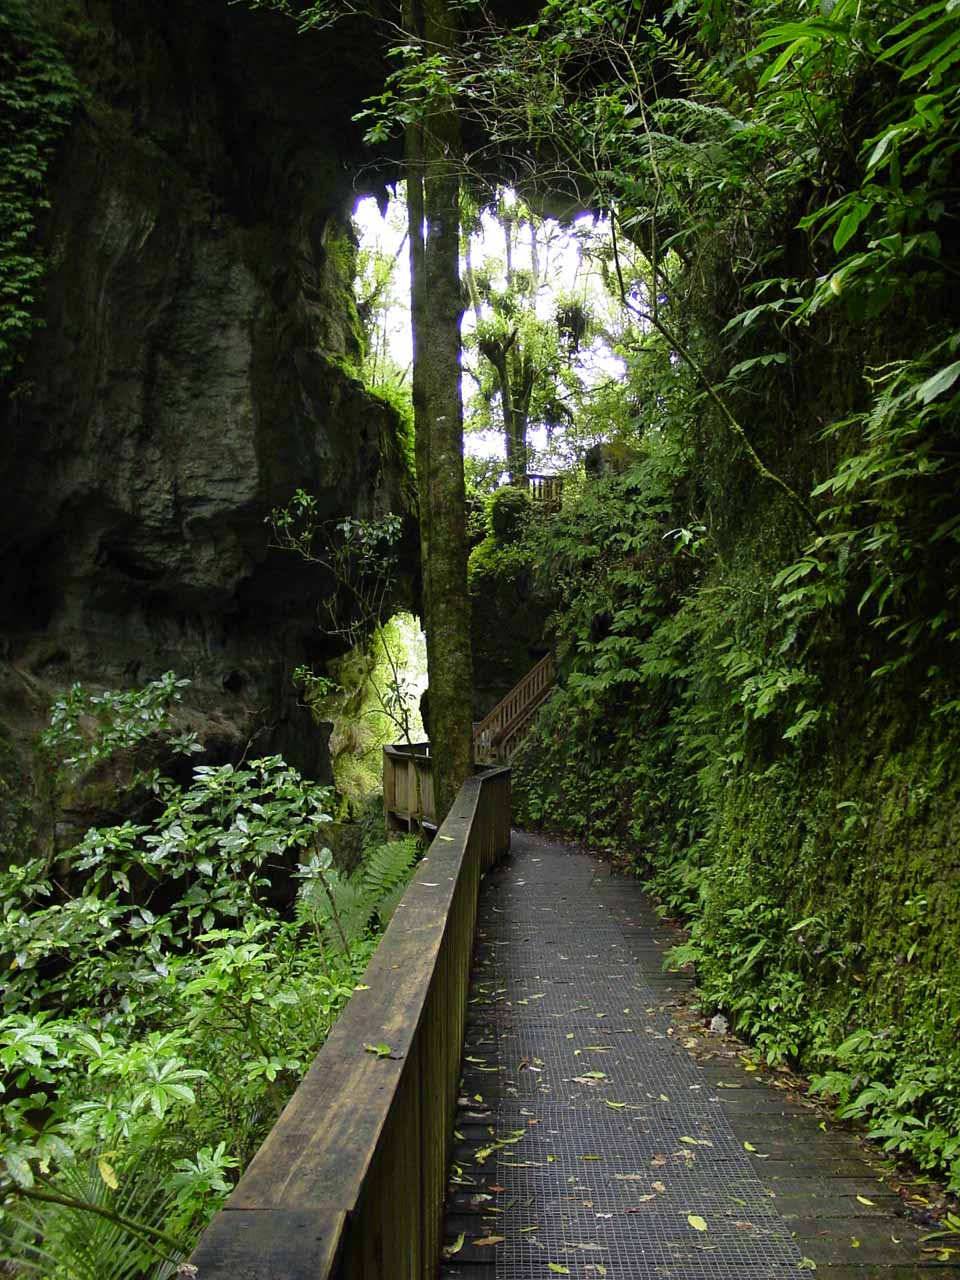 On the way to Marokopa Falls, we checked out the intriguing Mangapohue Natural Bridge, which was a collapsed cave that left behind a natural bridge instead